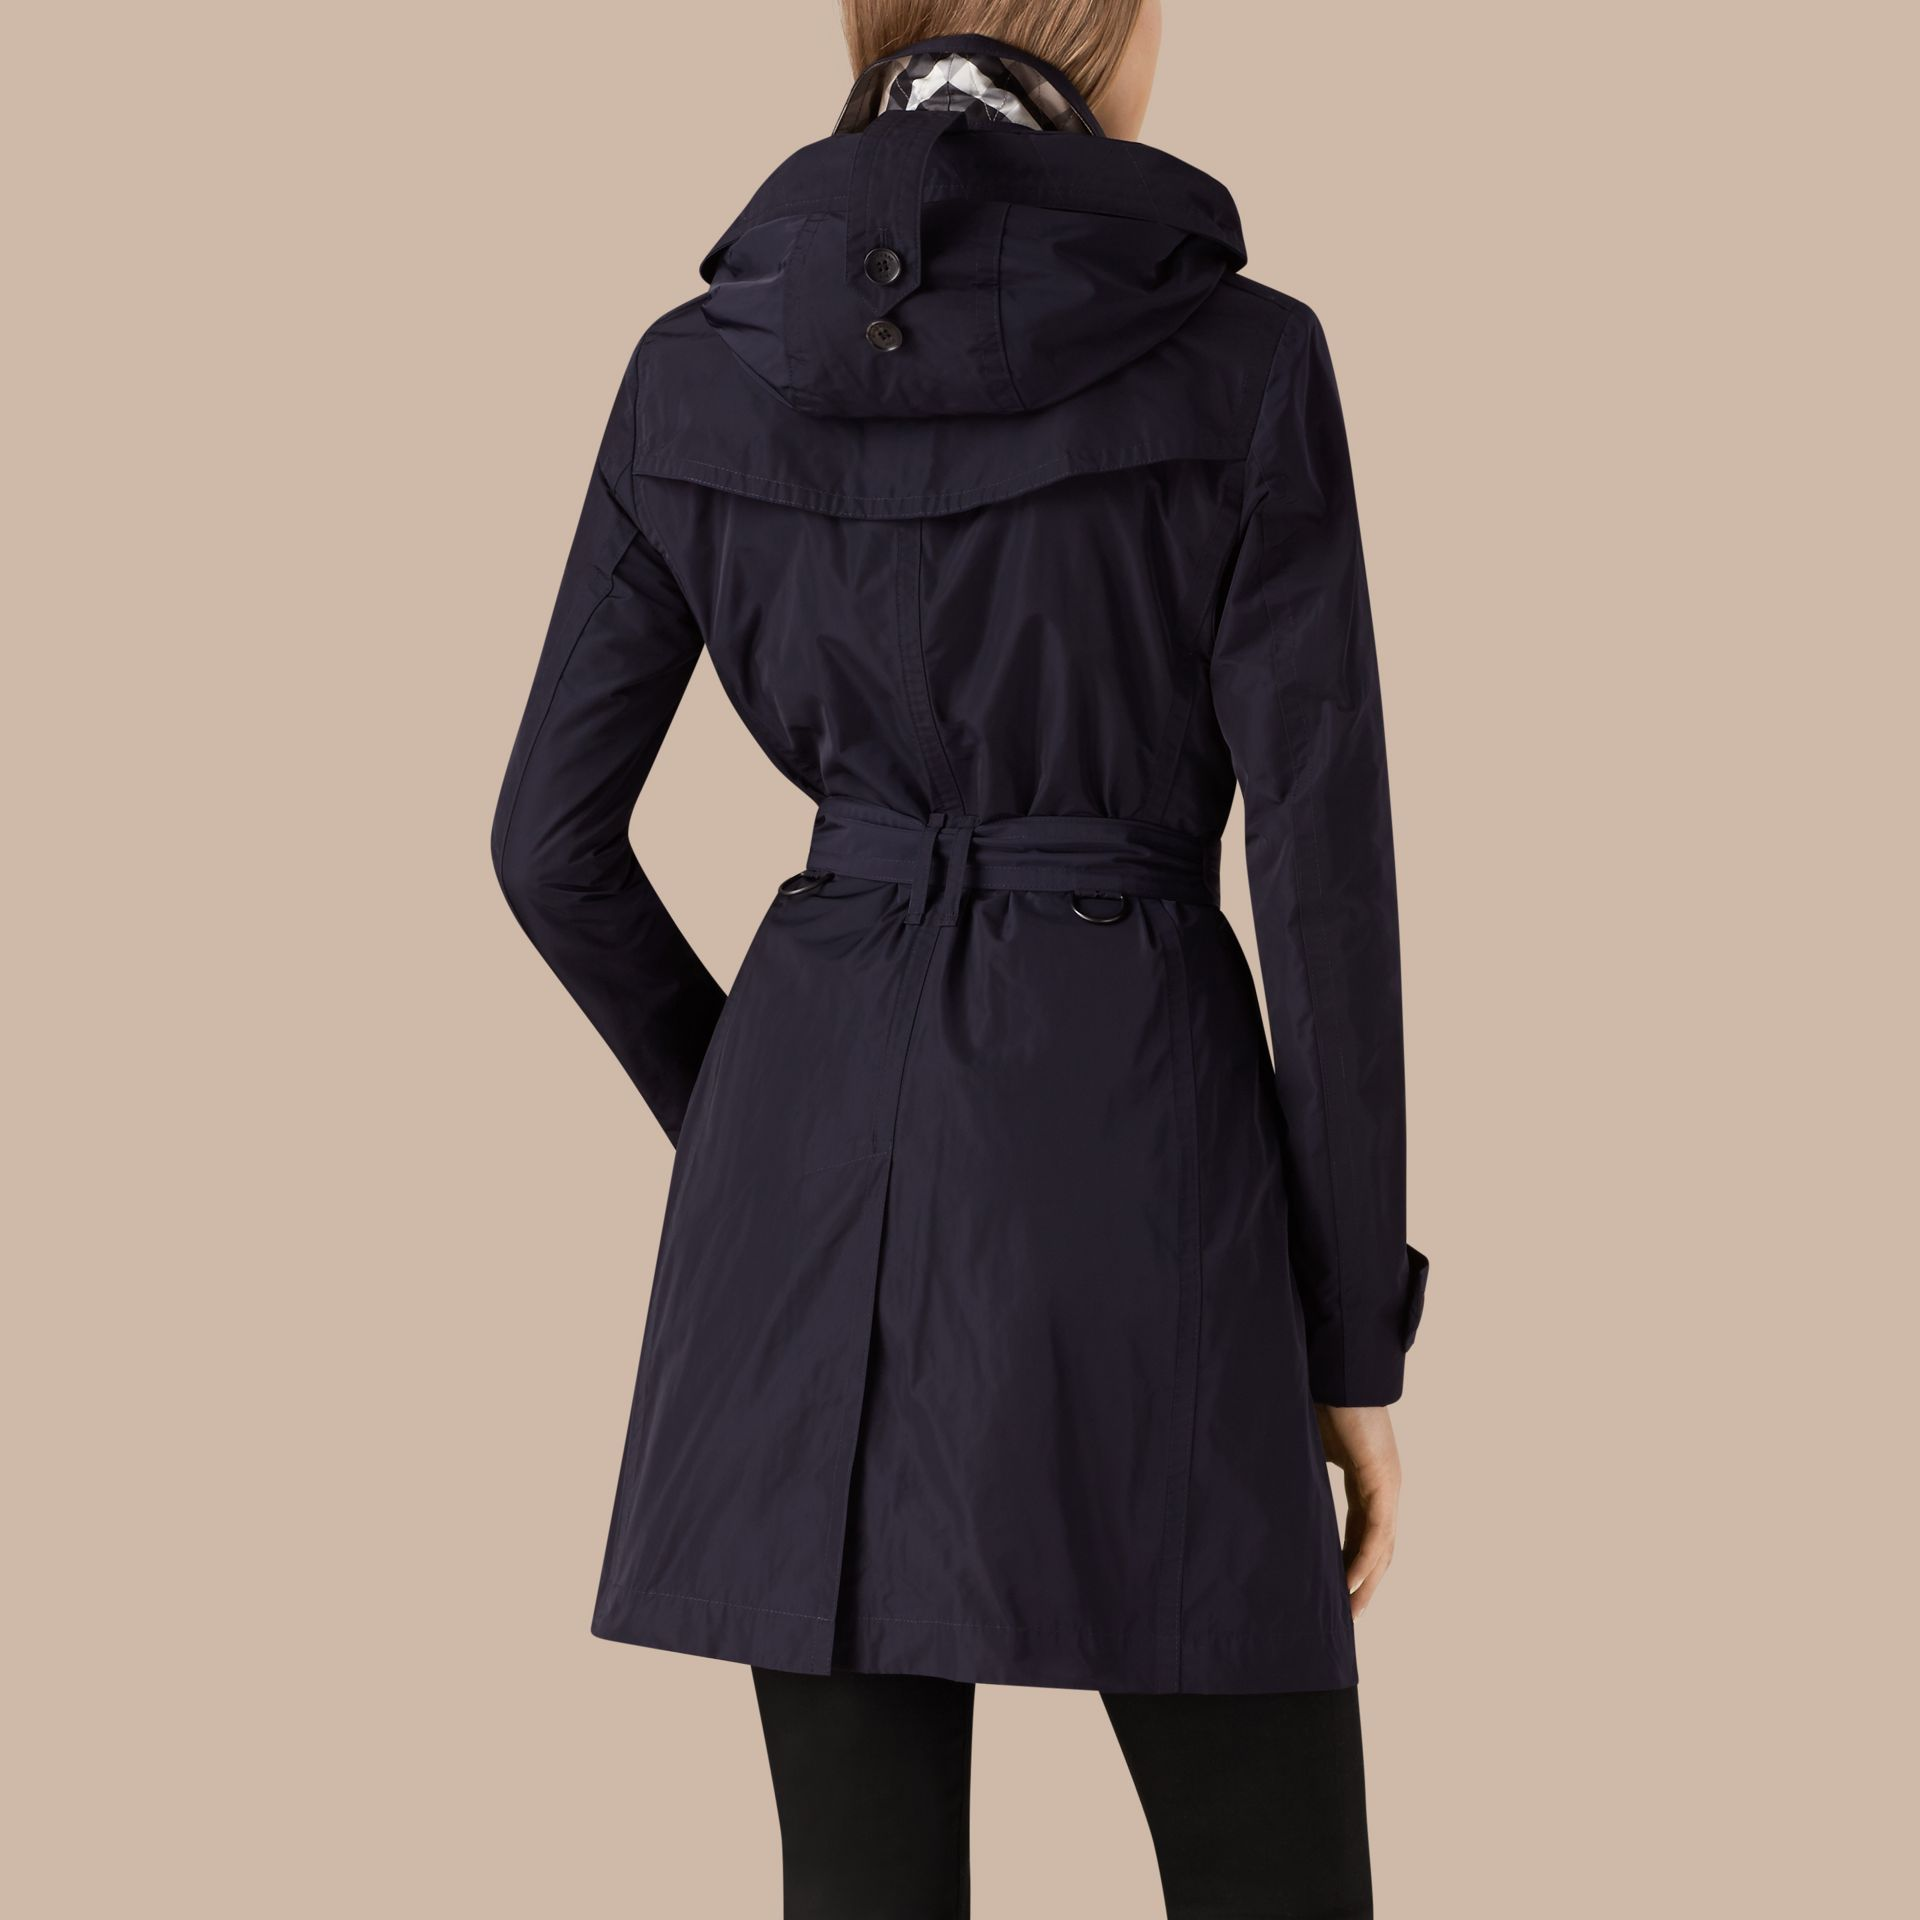 Taffeta Trench Coat with Detachable Hood in Navy - gallery image 3